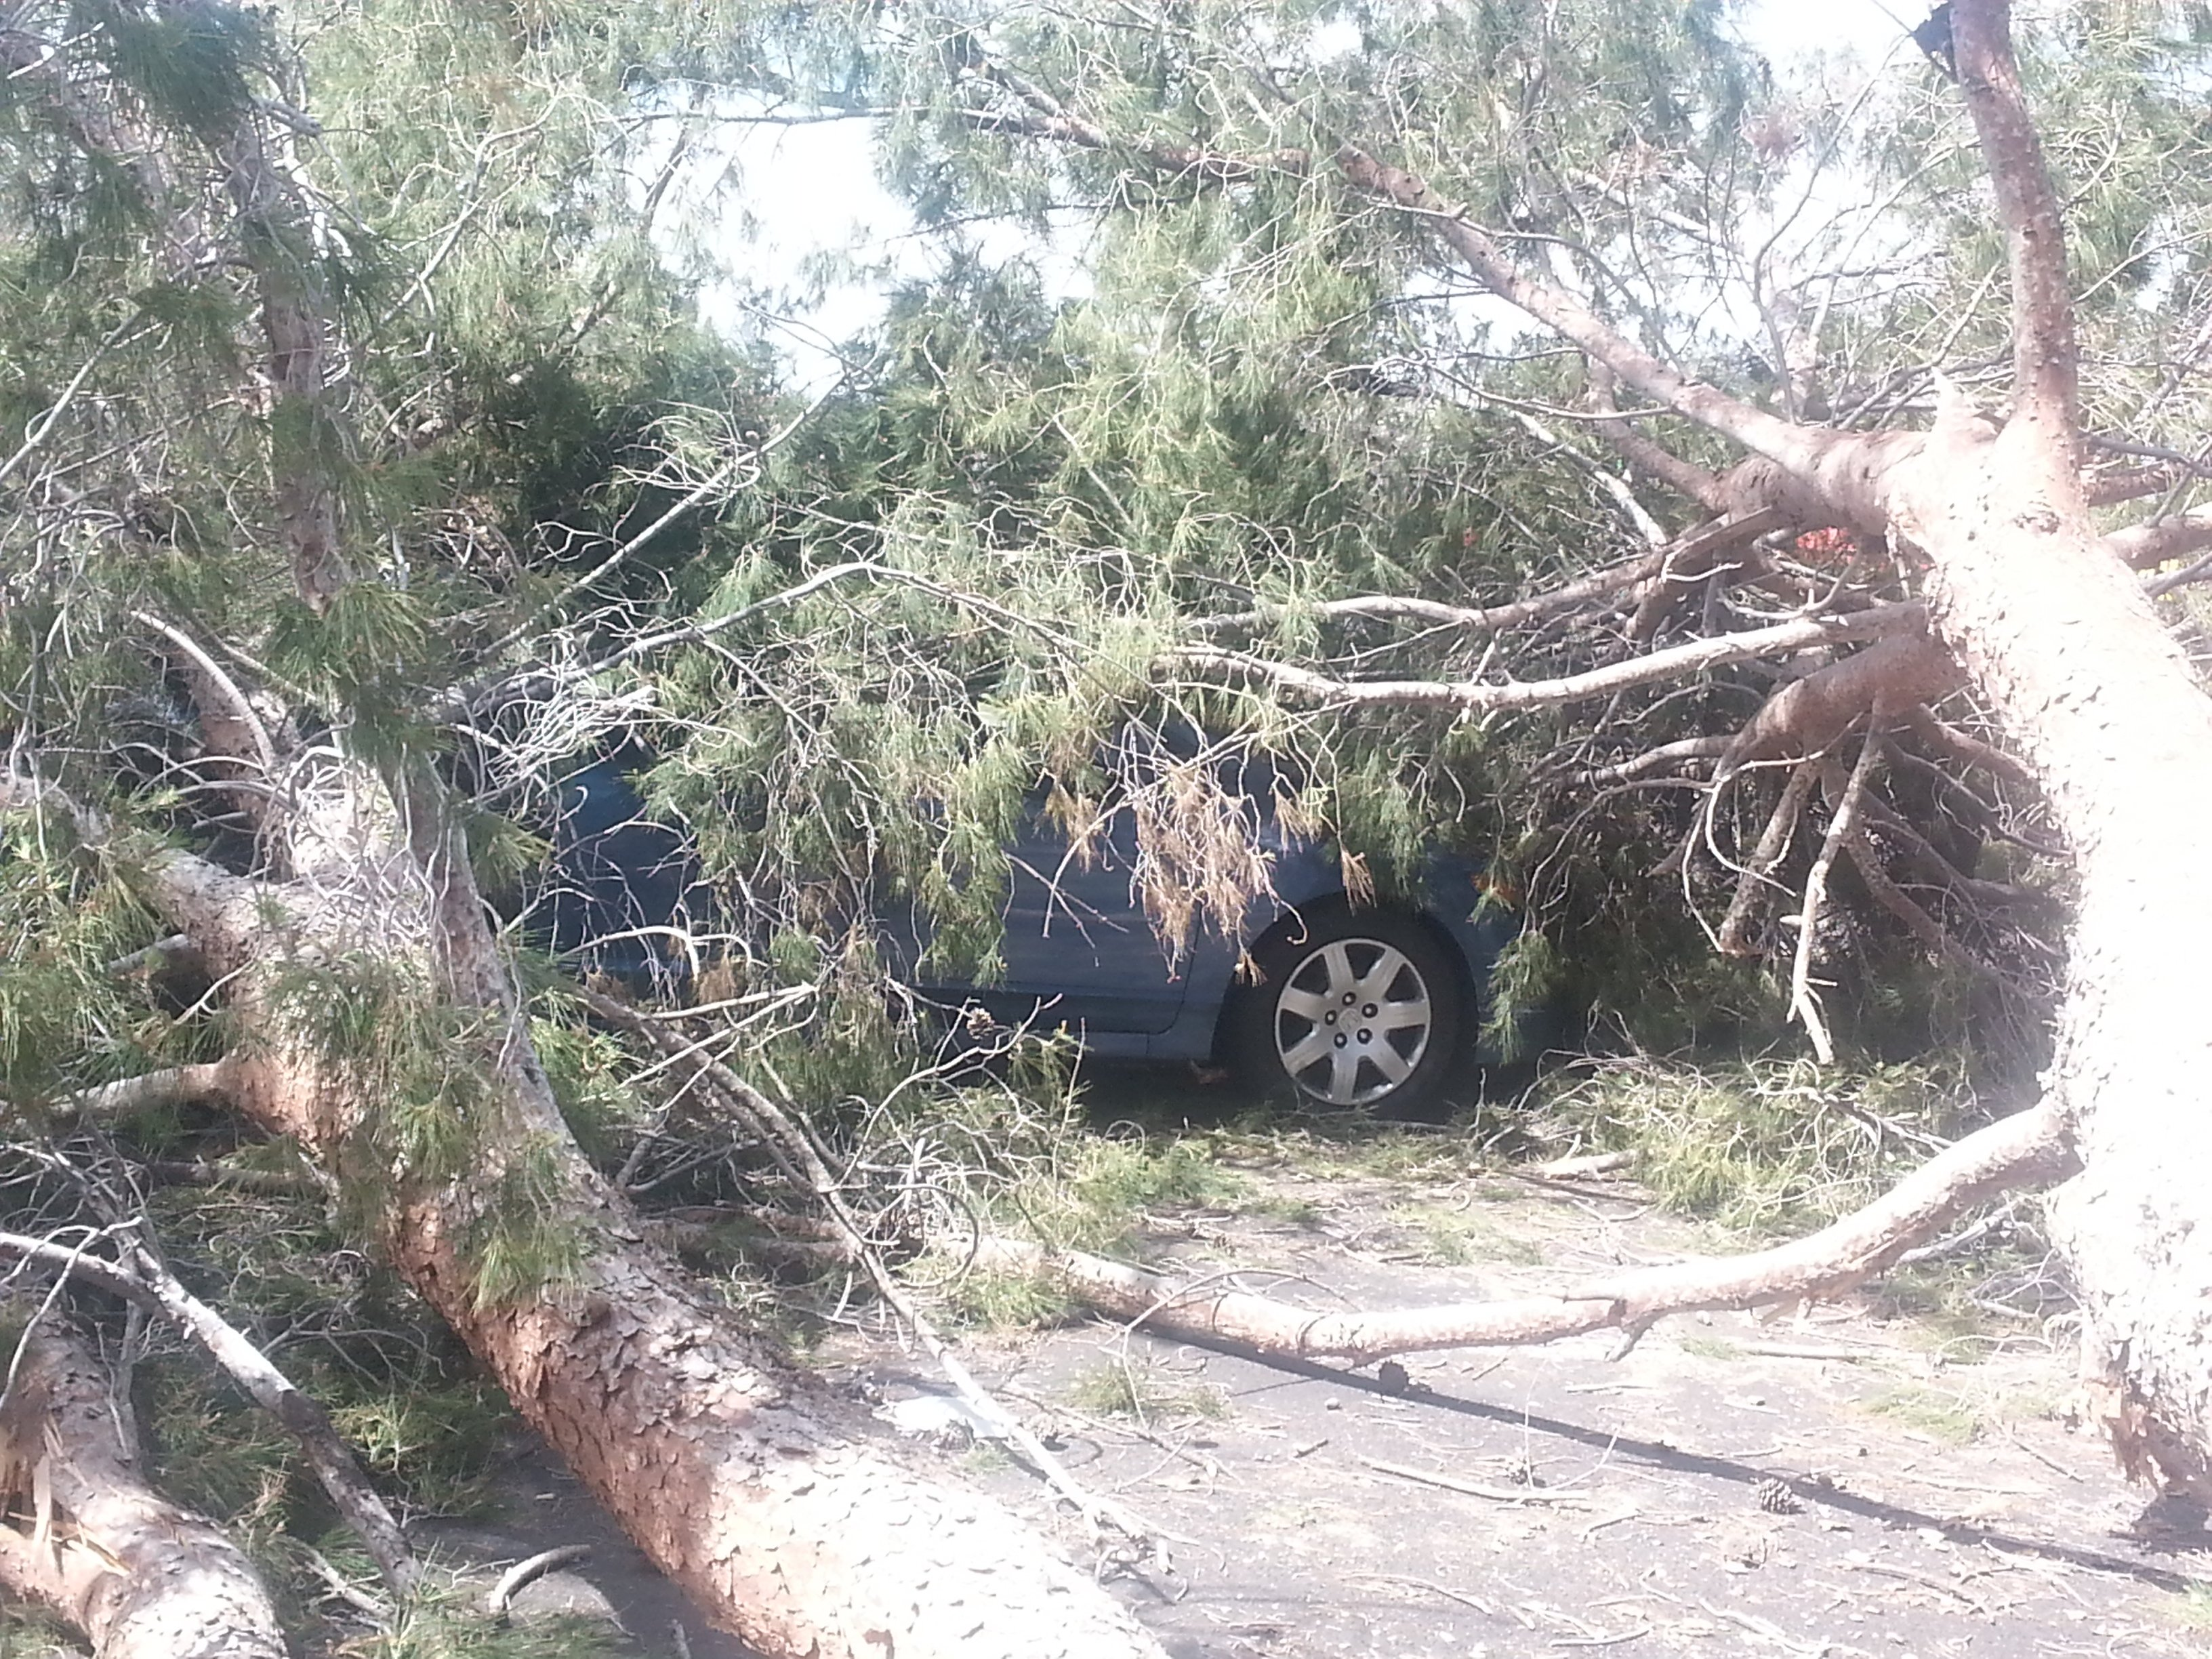 (Source: Shawn Kline, cbs5az.com)